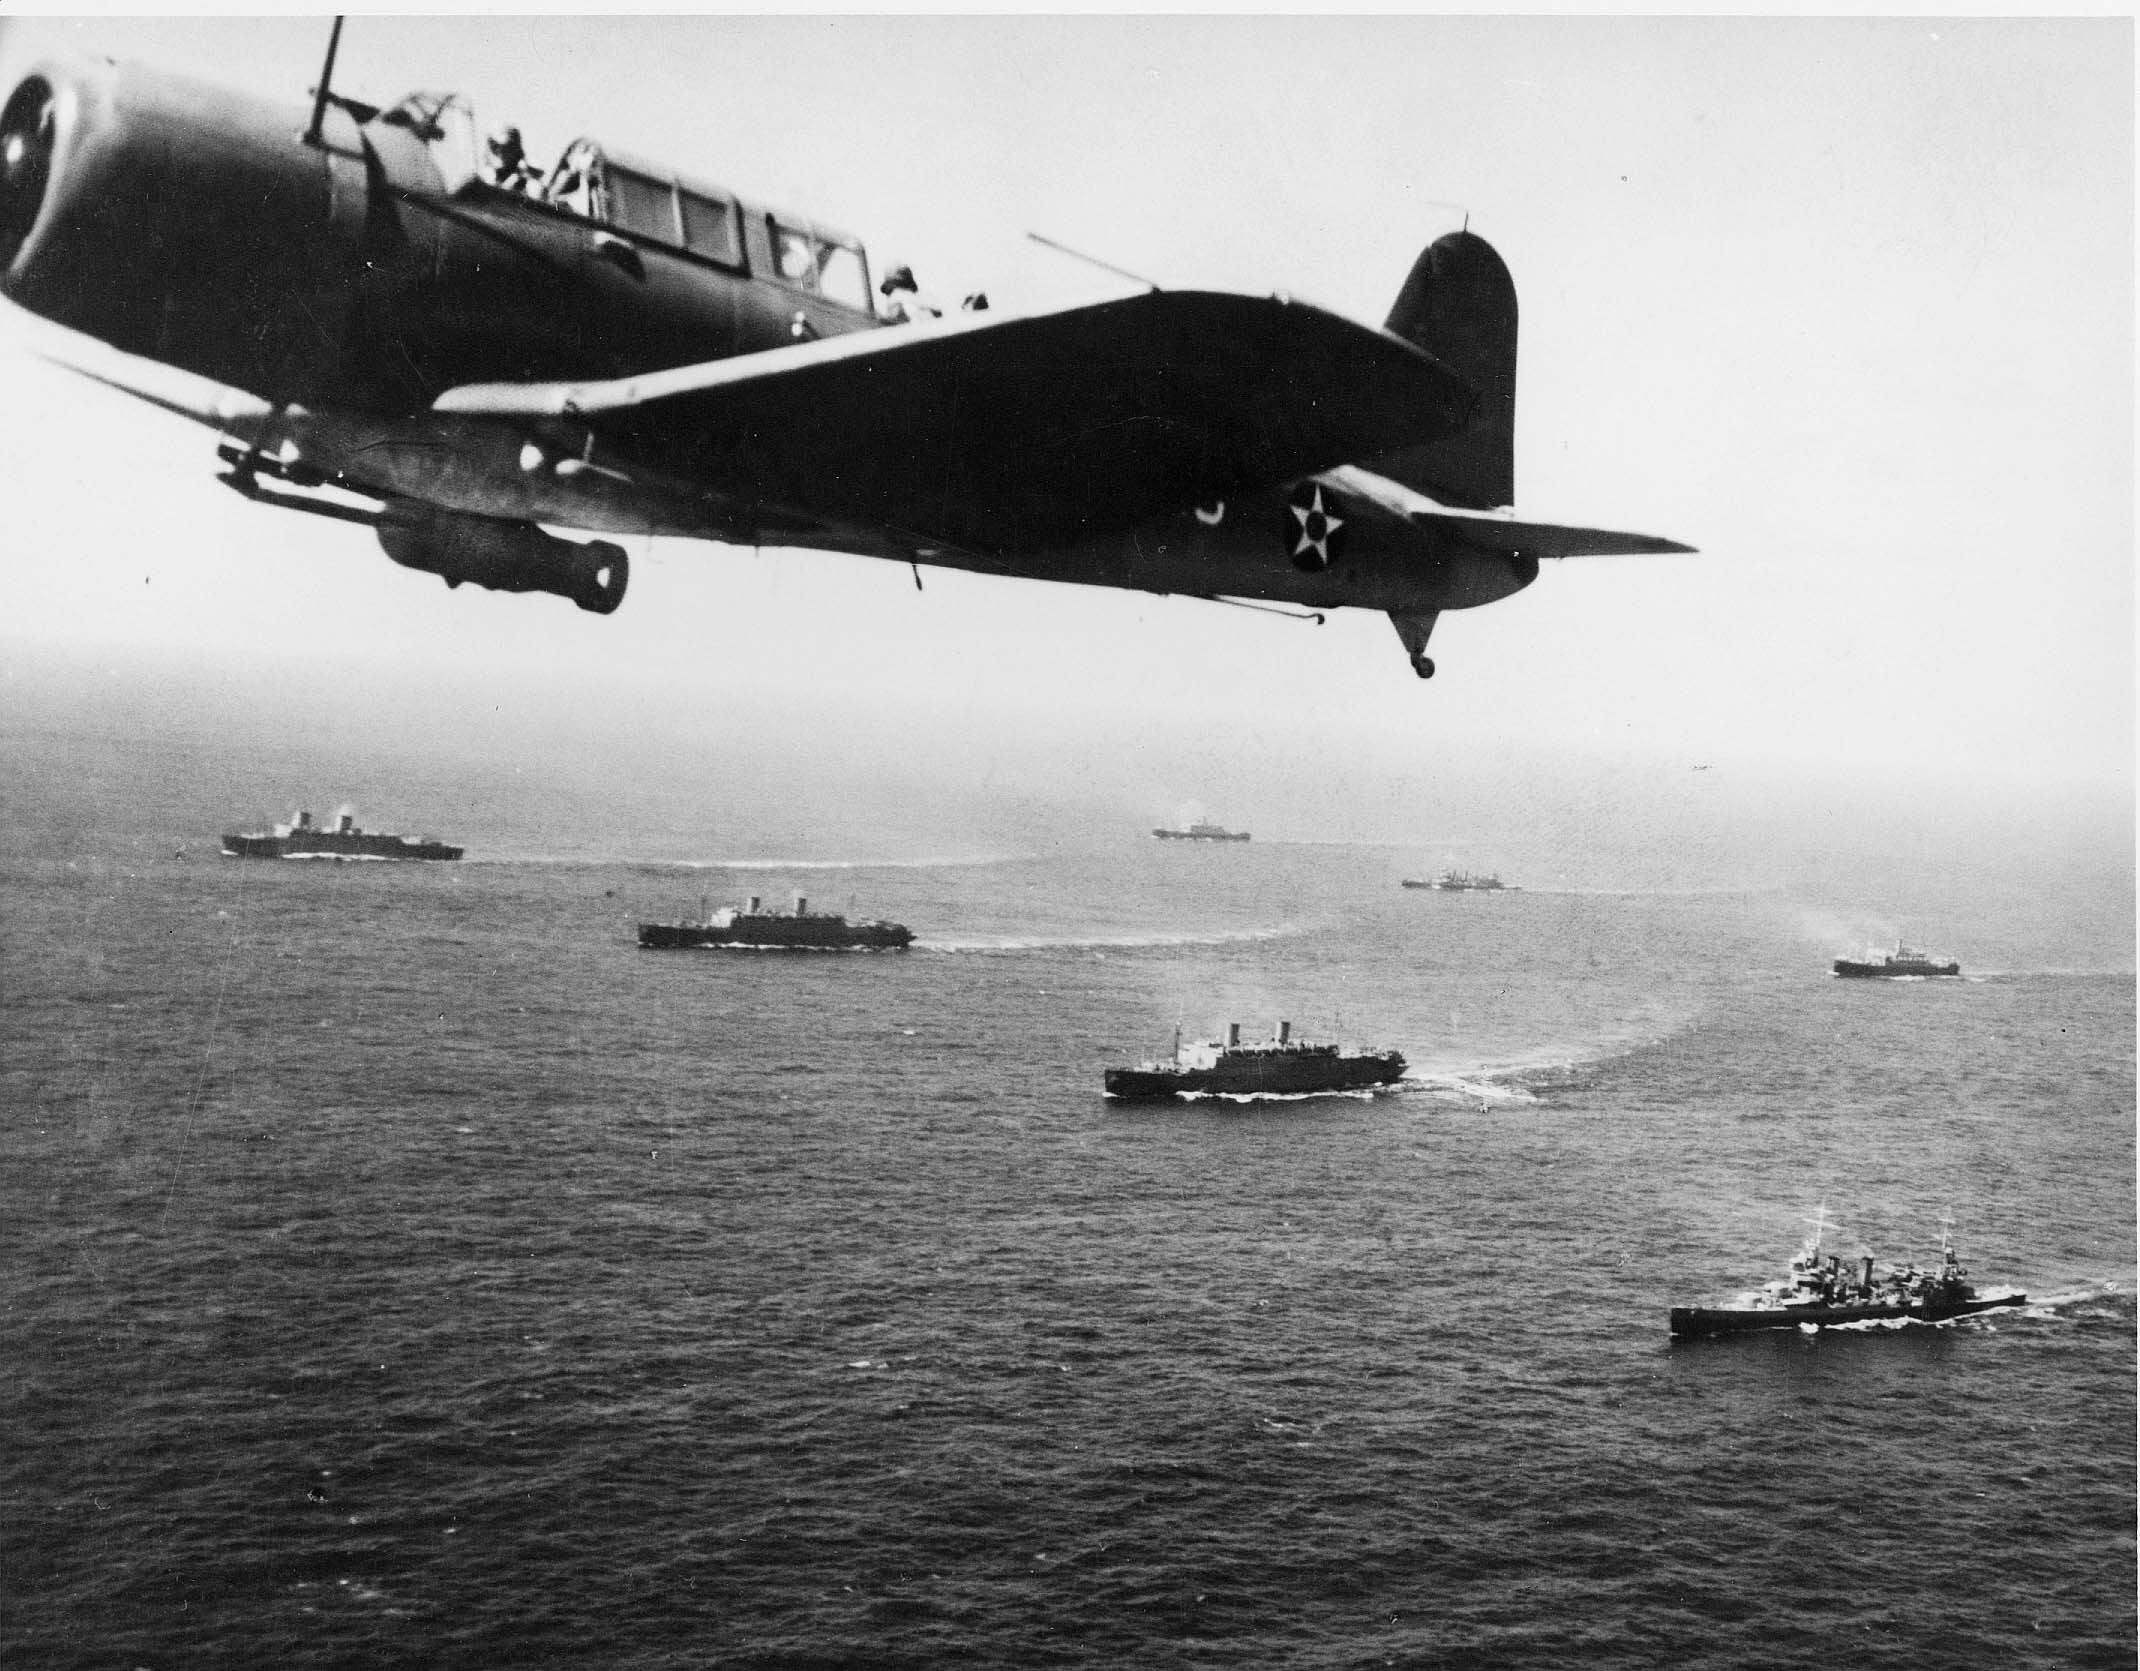 File:Convoy WS-12 en route to Cape Town, 1941 jpg